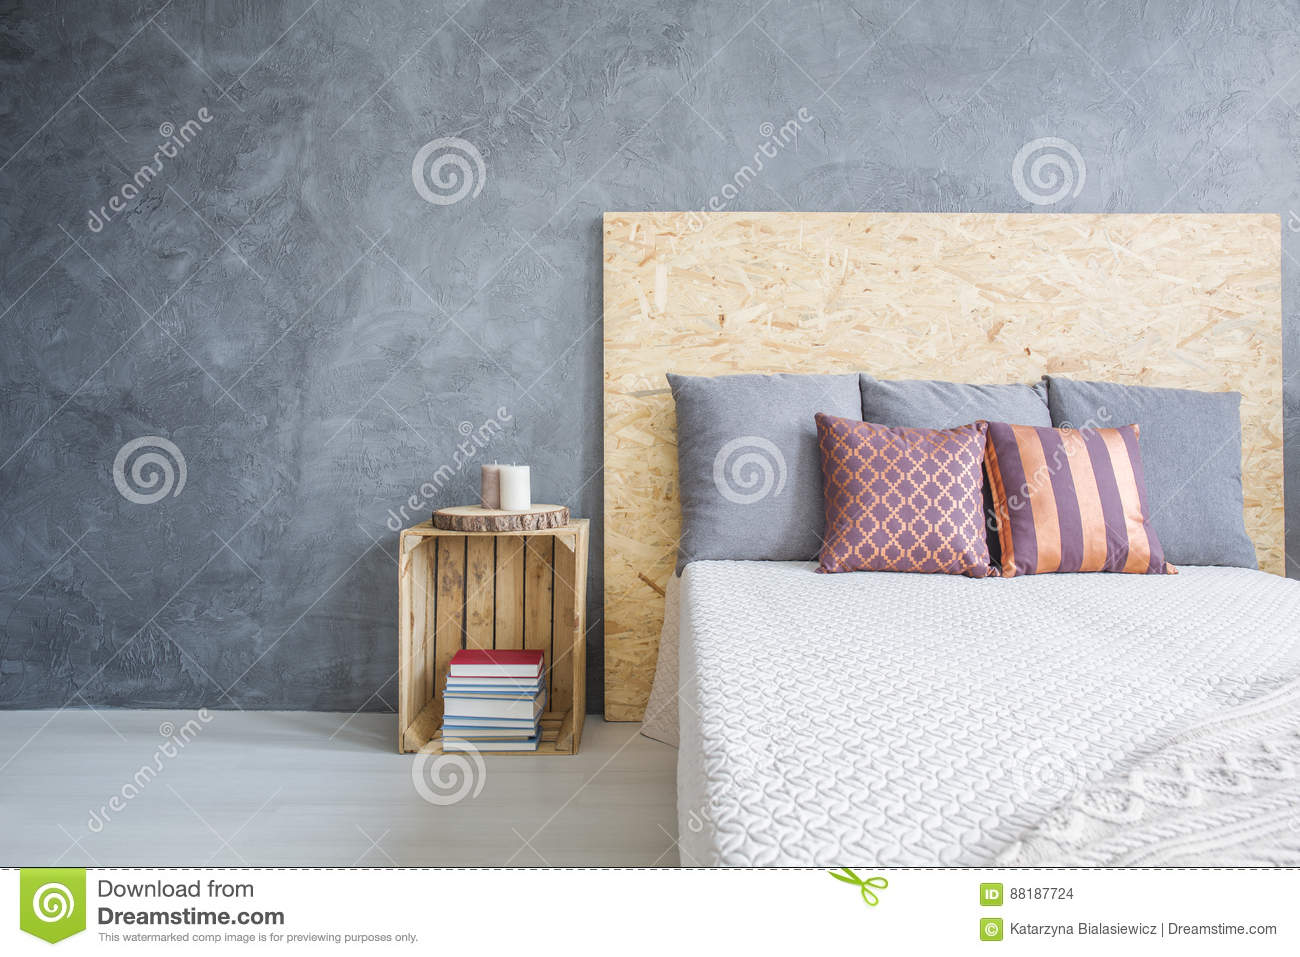 Crate Nightstand Photos Free Royalty Free Stock Photos From Dreamstime